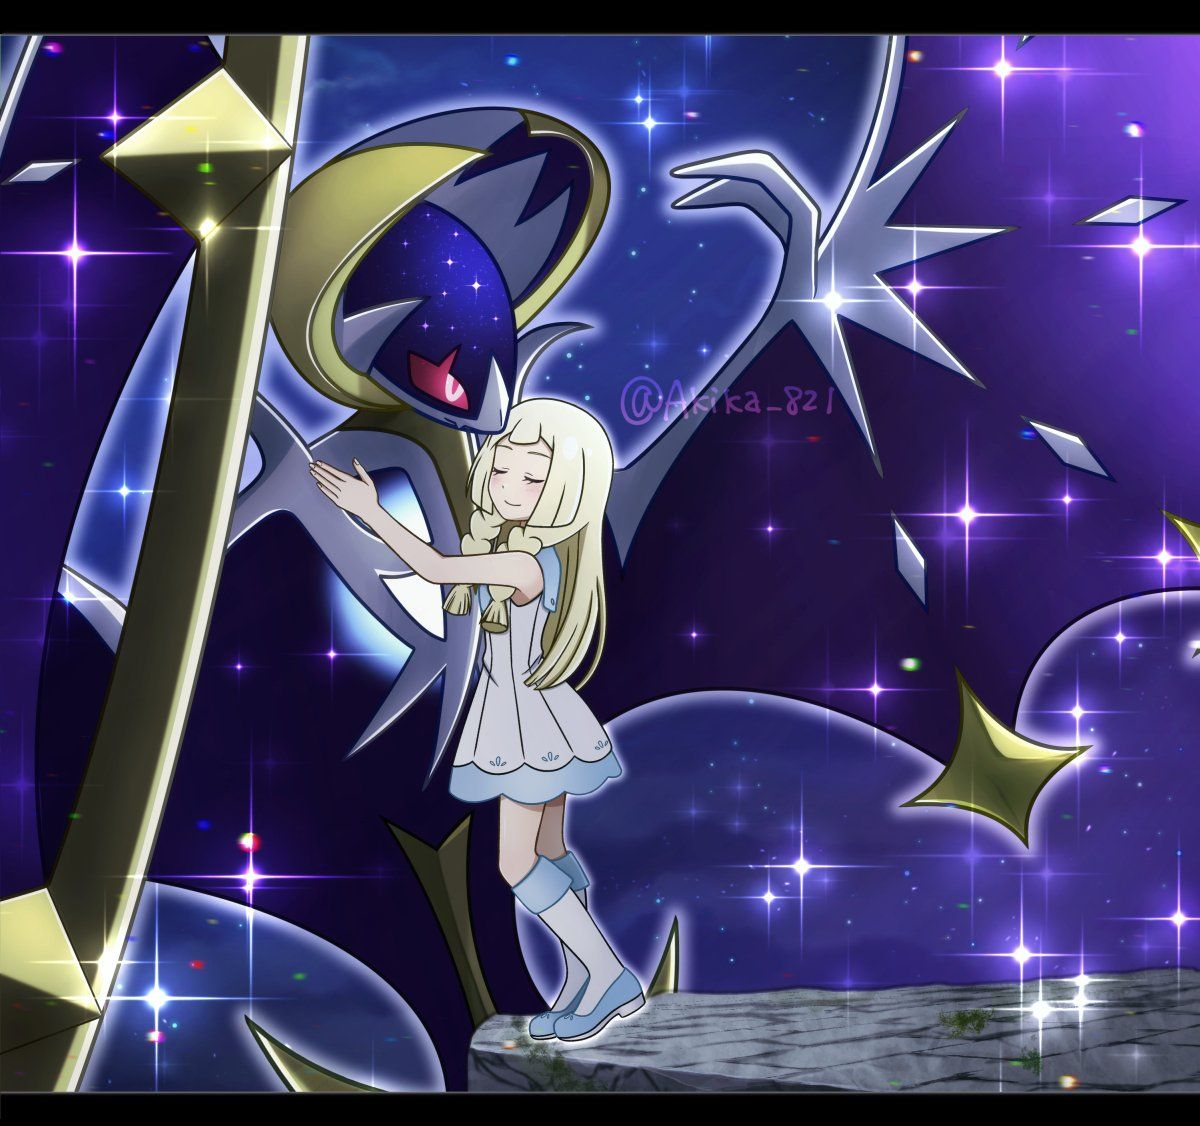 Pin By Business Name On Ivy Pokemon Mewtwo Pokemon Pictures Pokemon Heroes